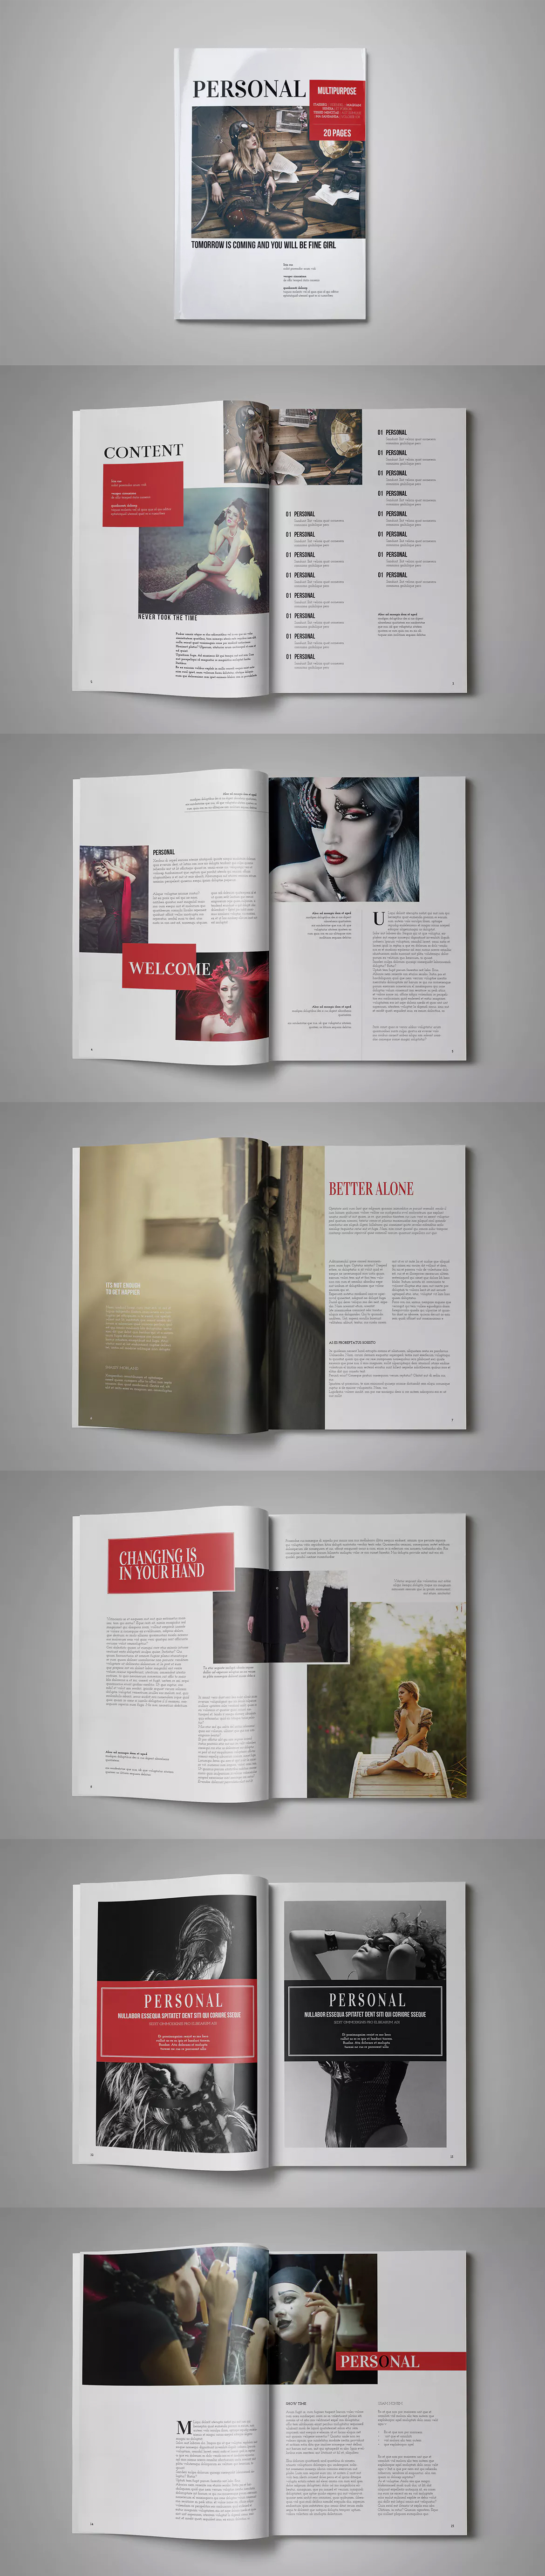 Multipurpose Magazine Template Indesign Indd A4 Layout 2